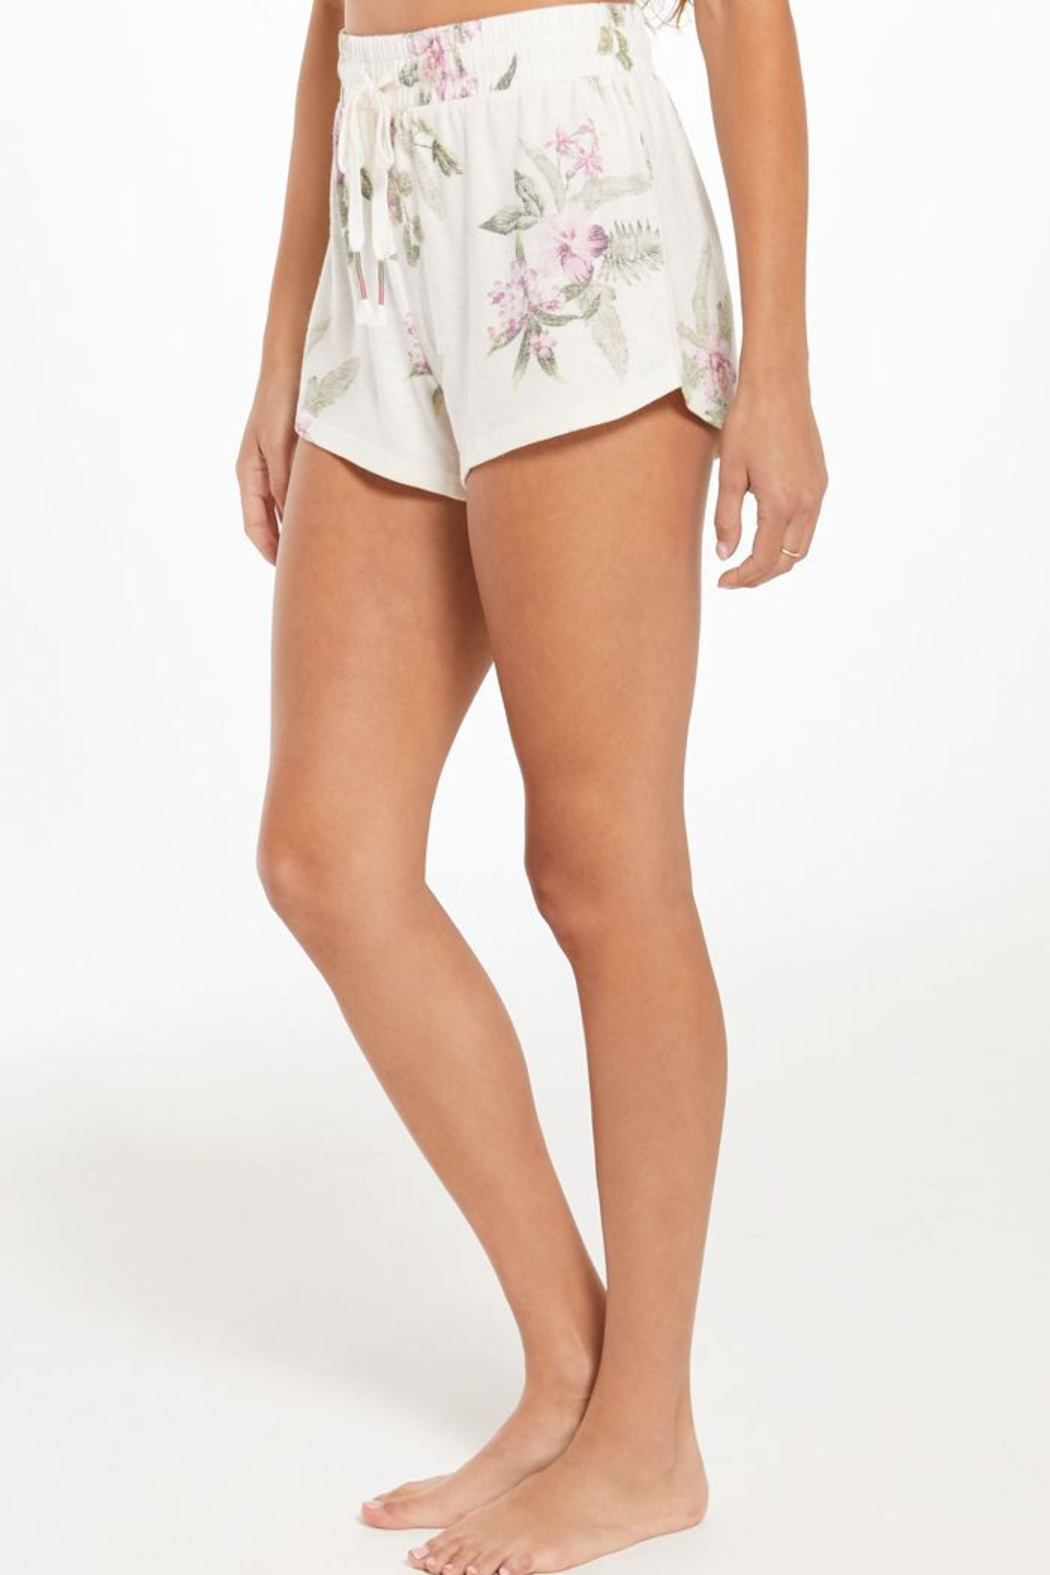 z supply Mia Spring Floral Short - Side Cropped Image